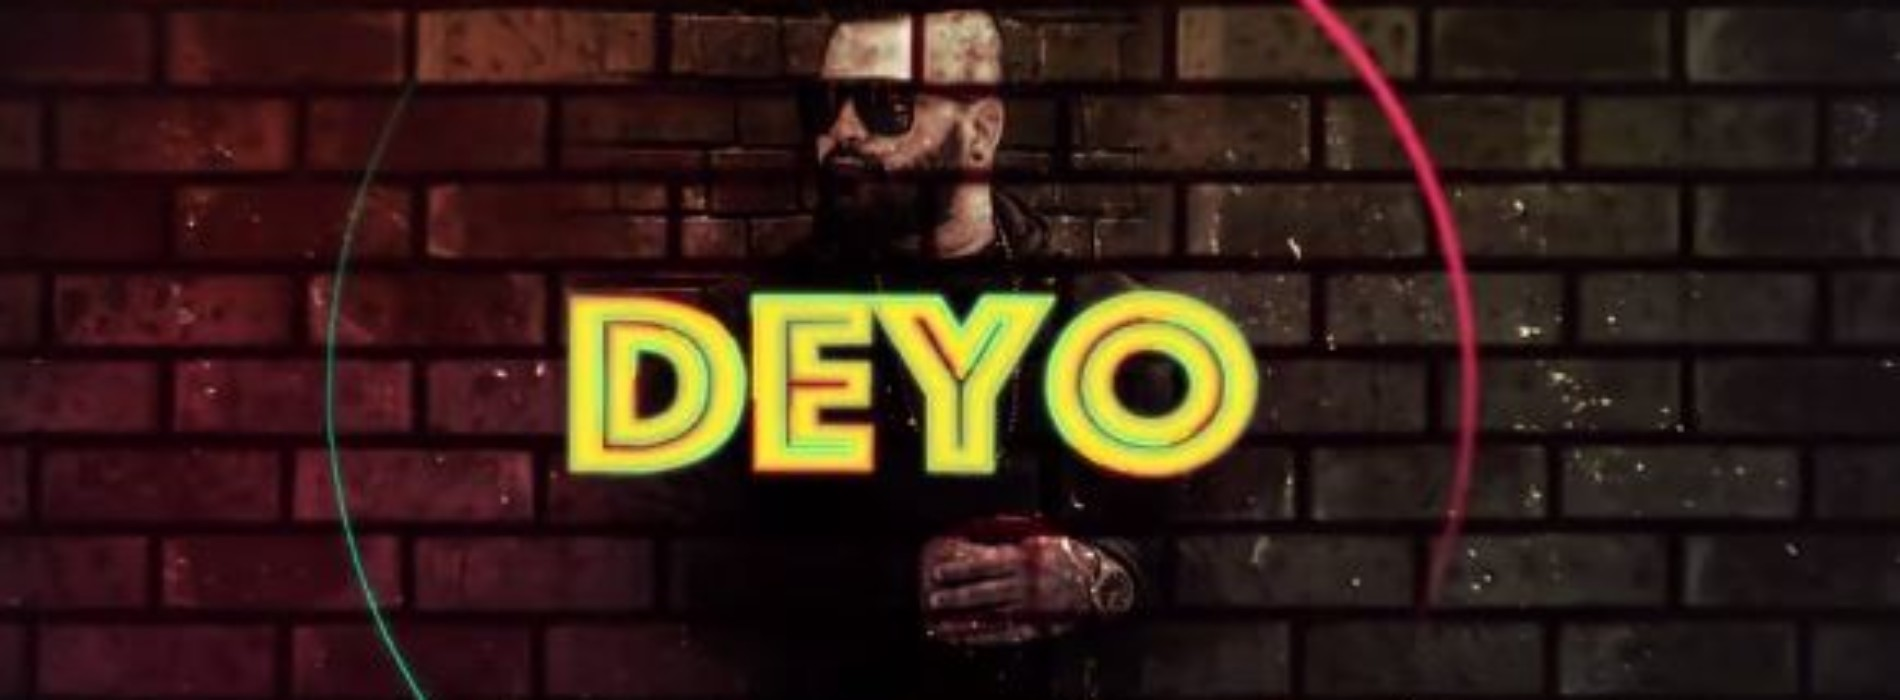 Producer Deyo Has New Music Coming Out